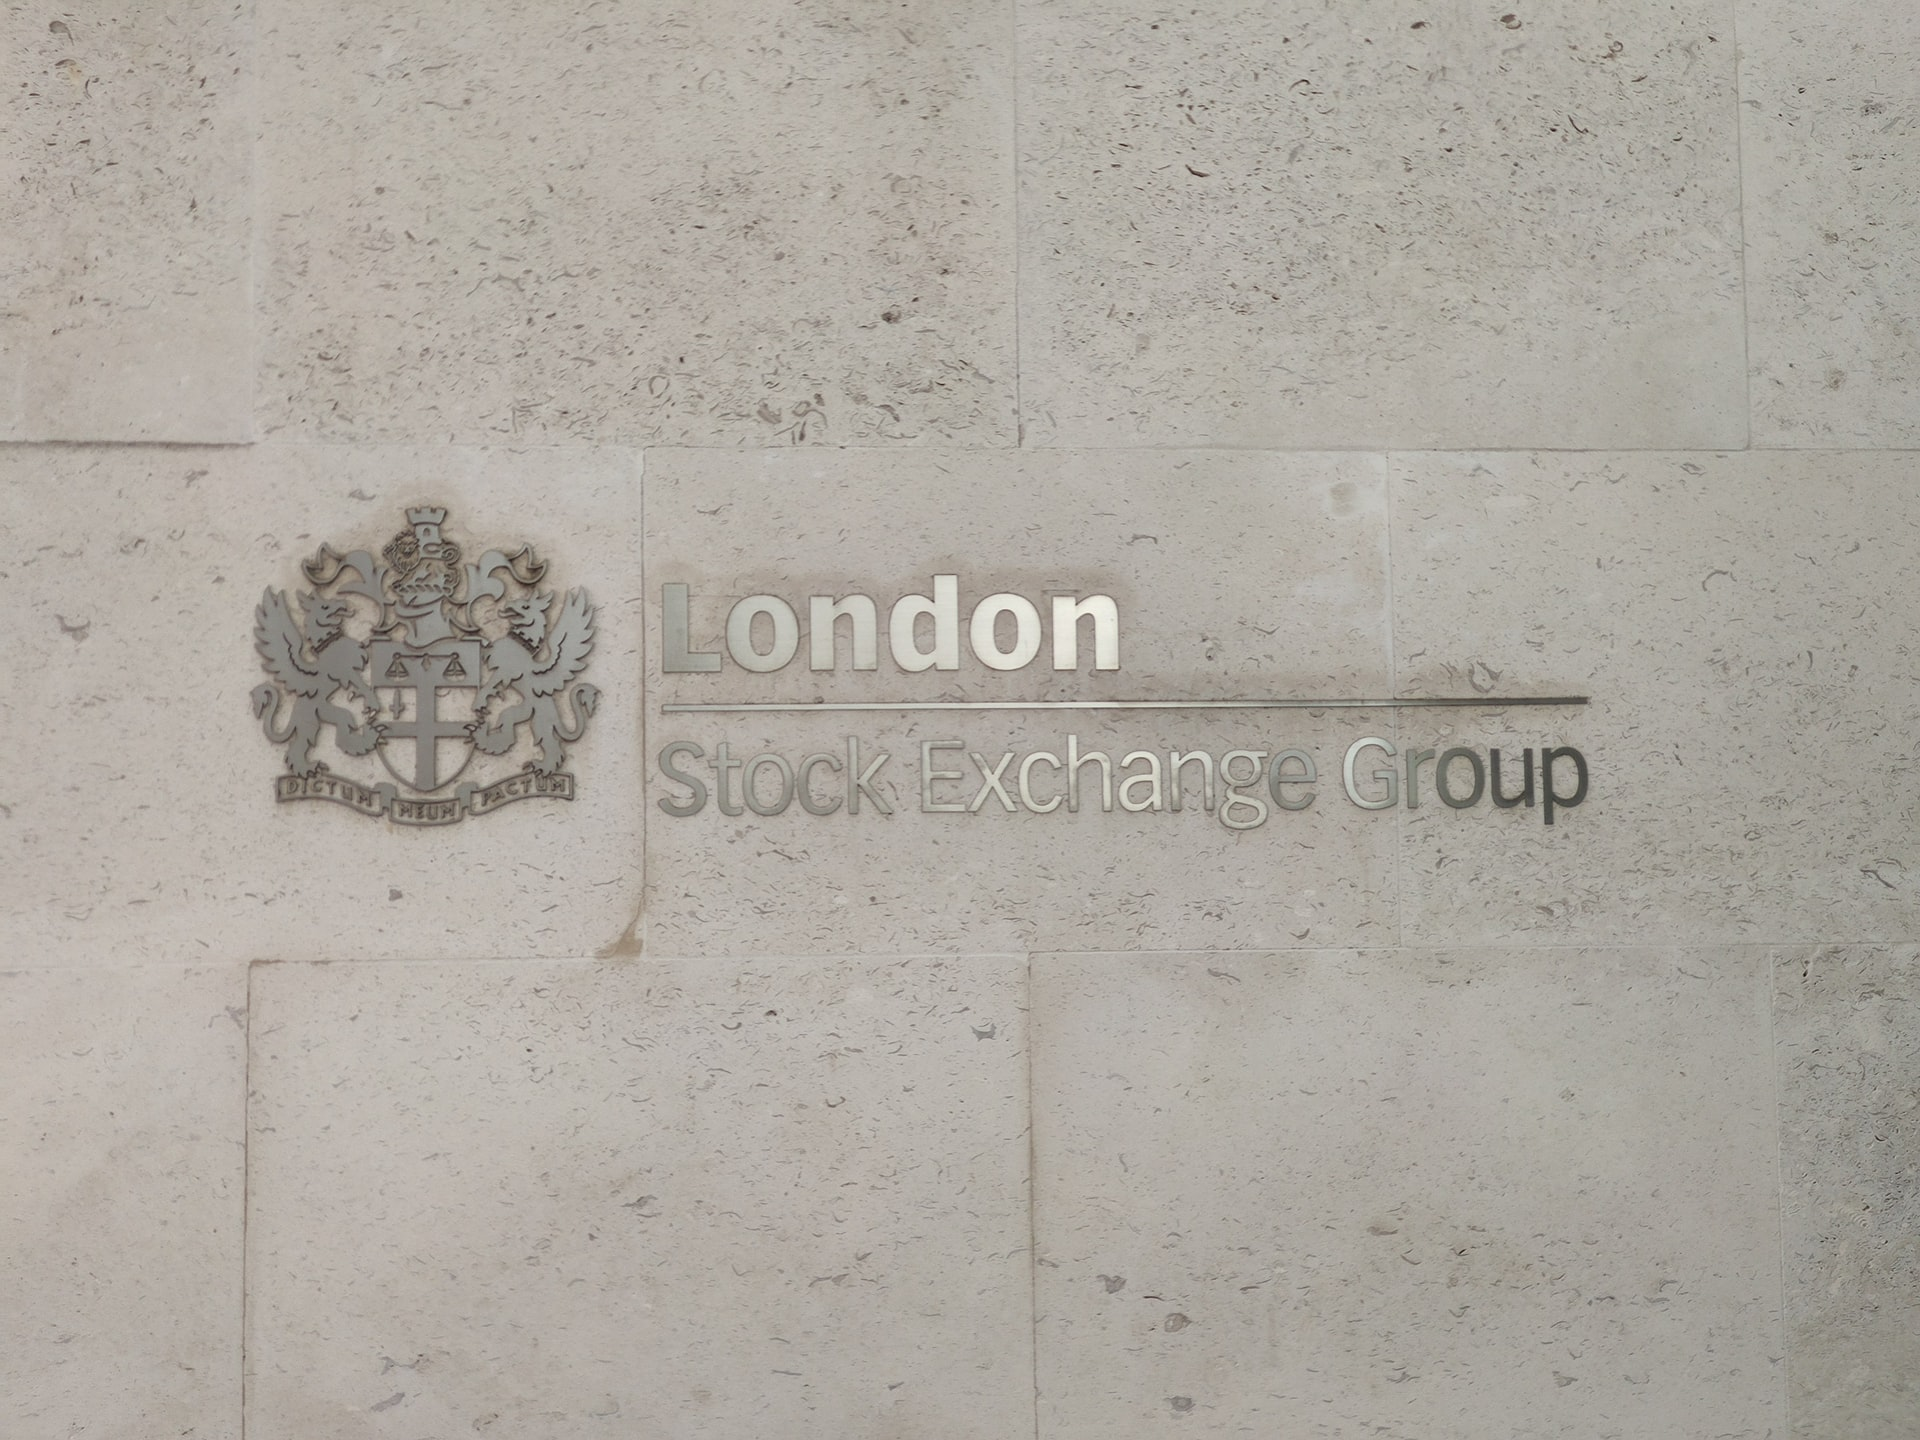 Three Largest Deals on London Stock Exchange in the H1 2020 Worth £25.1bn